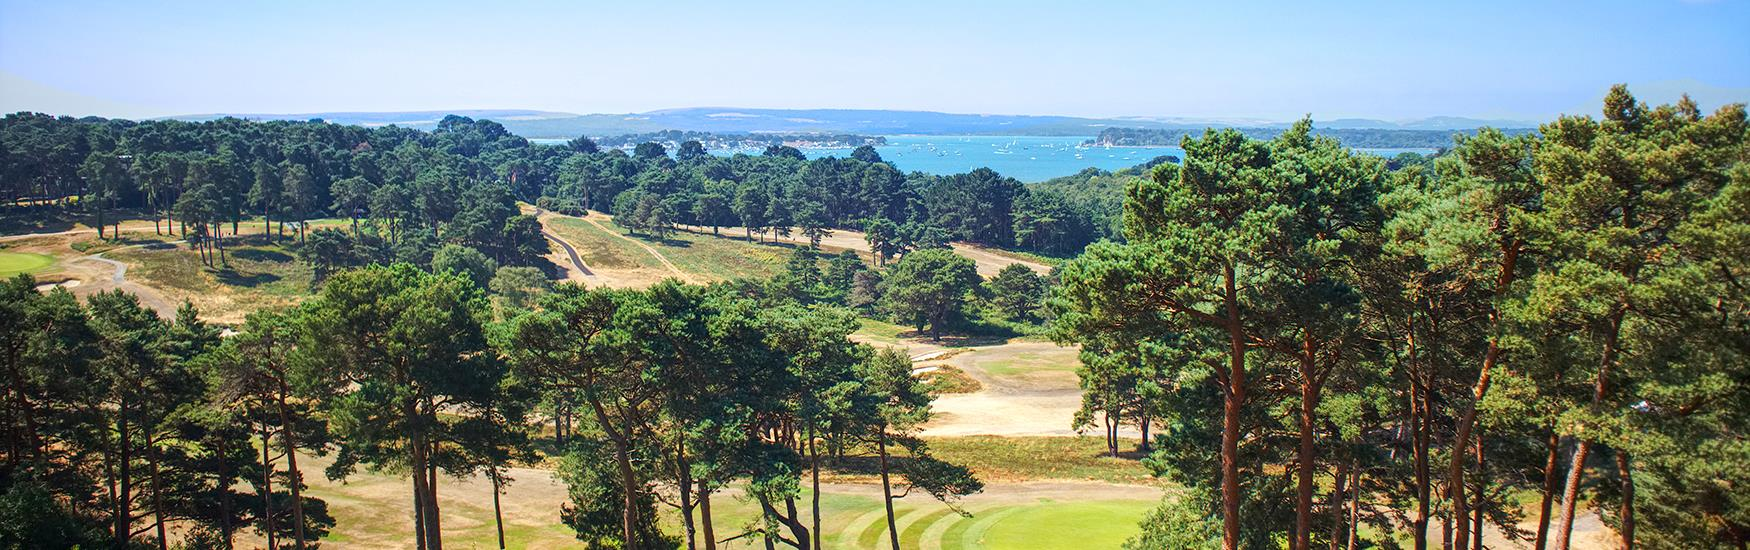 View of a green golf course with beautiful trees, grass and view of the sea with a blue sky